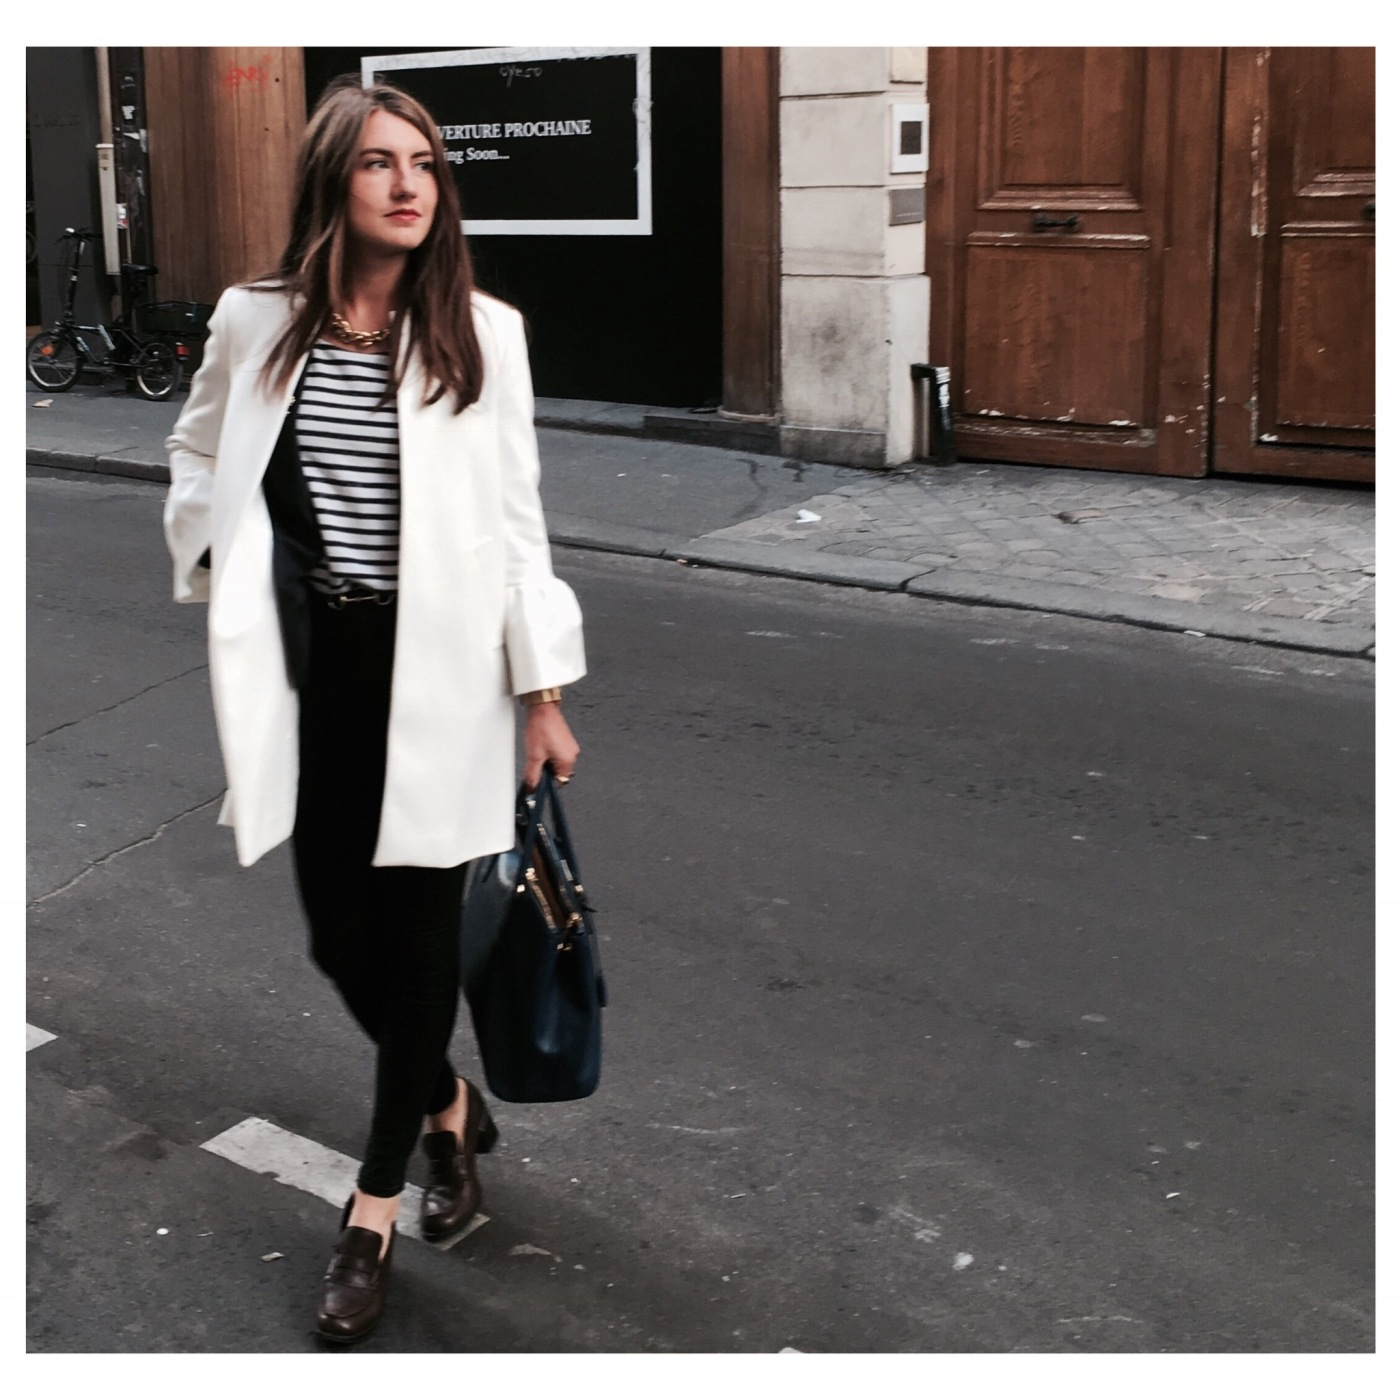 Mathilde G fashion blogger streetstyle 2